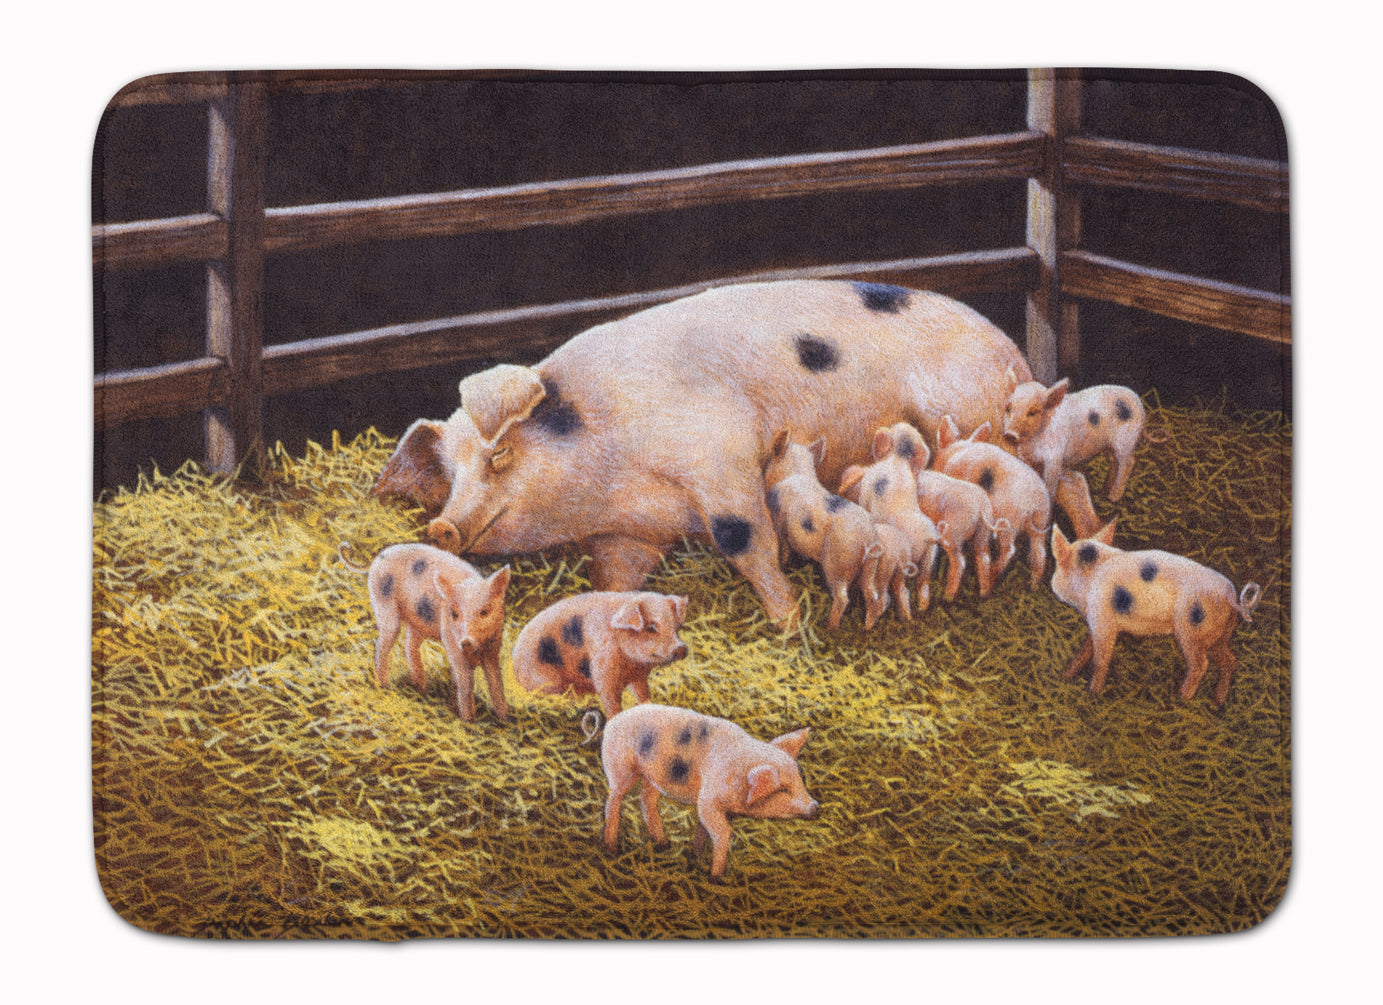 Pigs Piglets at Dinner Time Machine Washable Memory Foam Mat BDBA0296RUG by Caroline's Treasures